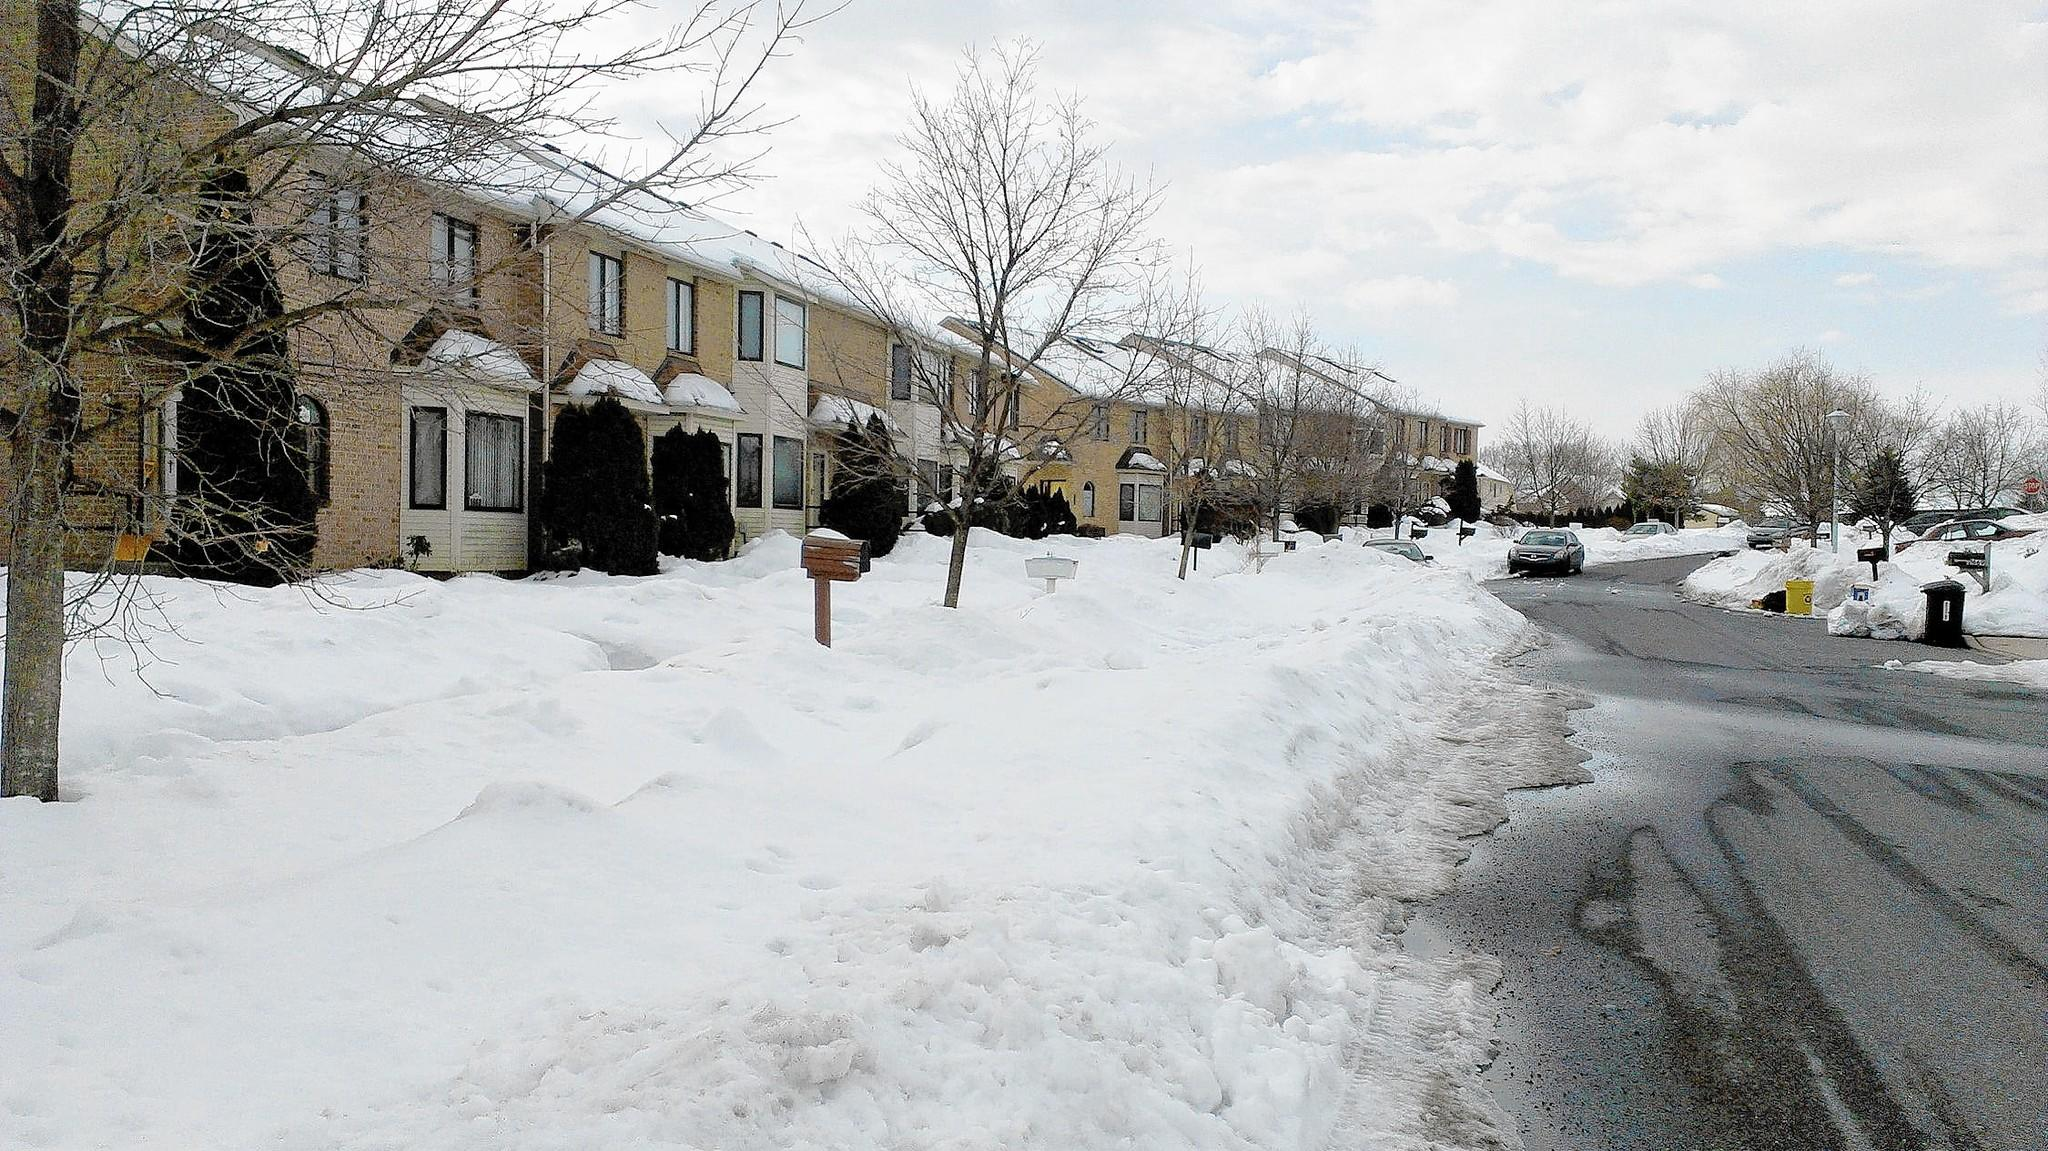 Homeowners in several Whitehall Township neighborhoods did not receive mail for days after the last big snowstorm because mail carriers said they couldn't reach many of their boxes.